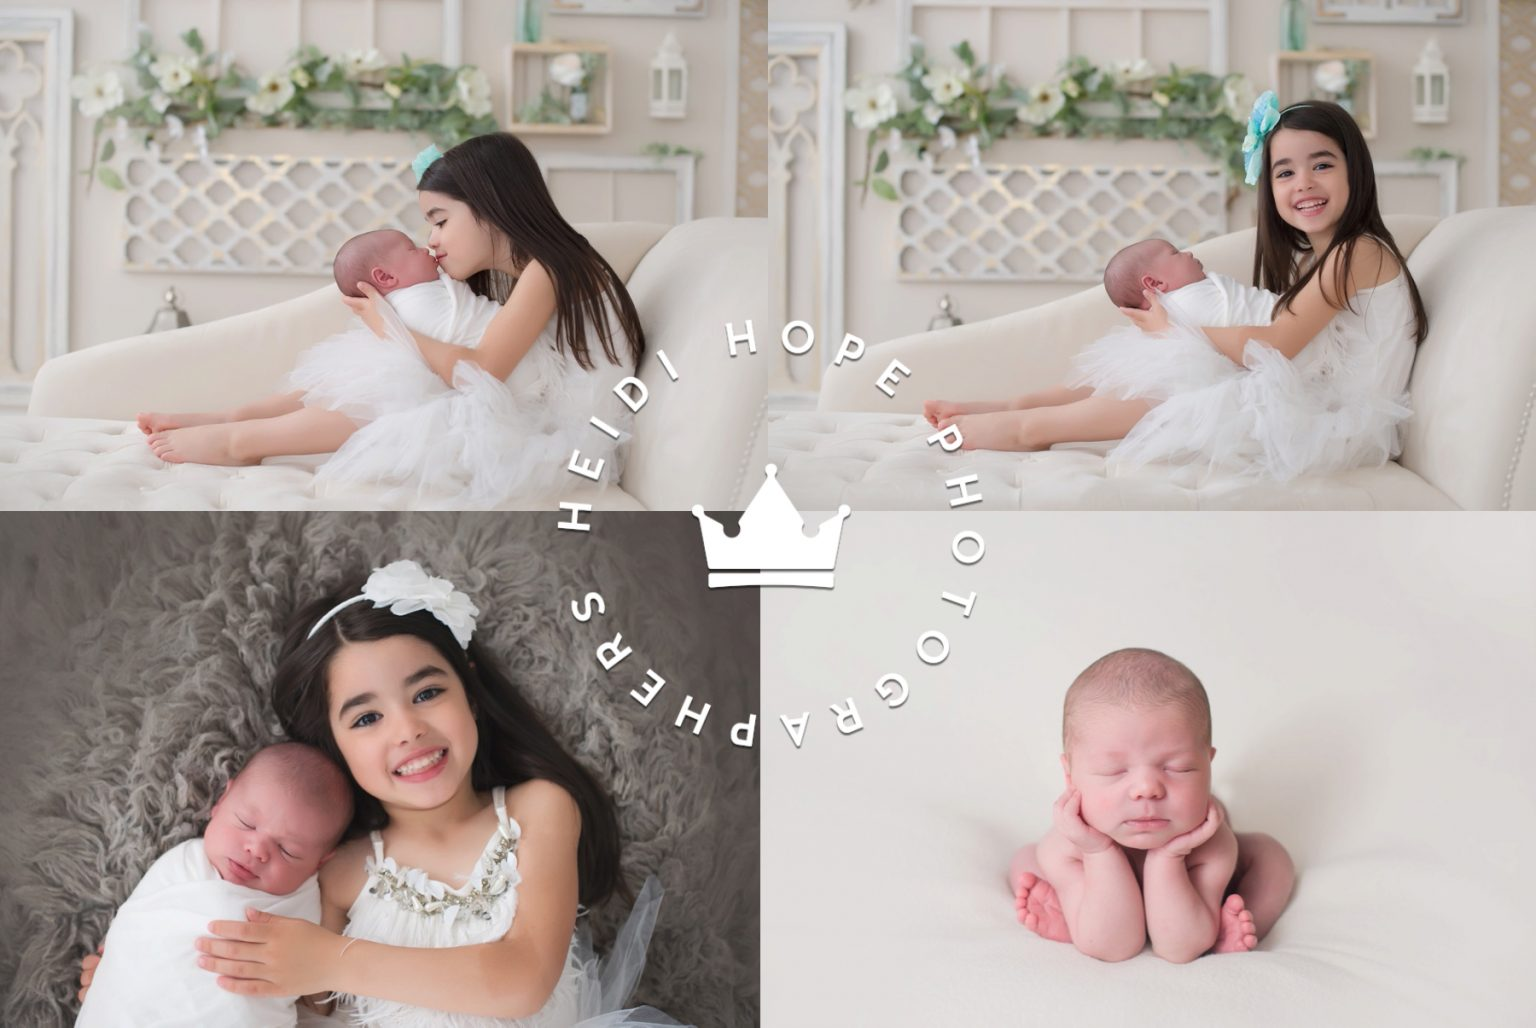 Newengland_newborn_photographer